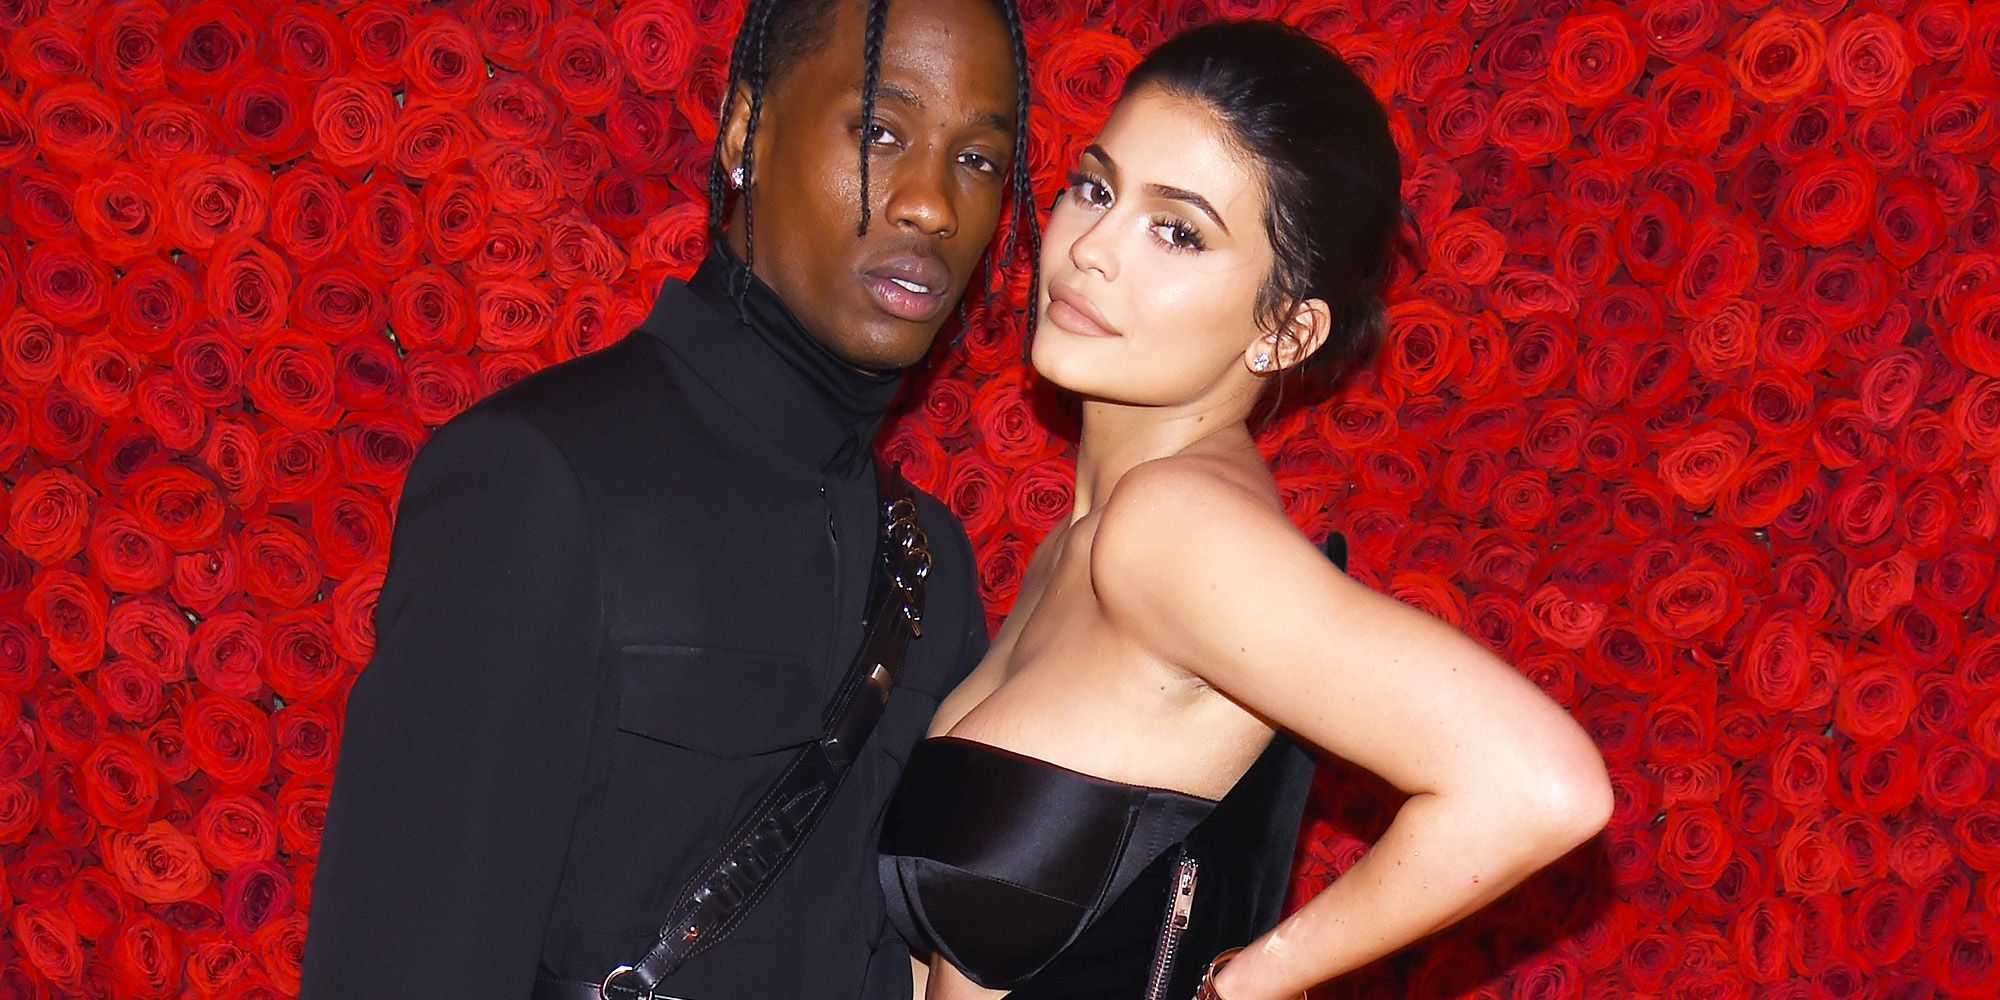 Kylie Jenner Shows Off The Gorgeous Flower Arrangement Travis Scott Prepared For Her For Valentine's Day - Fans Wonder If He Proposed